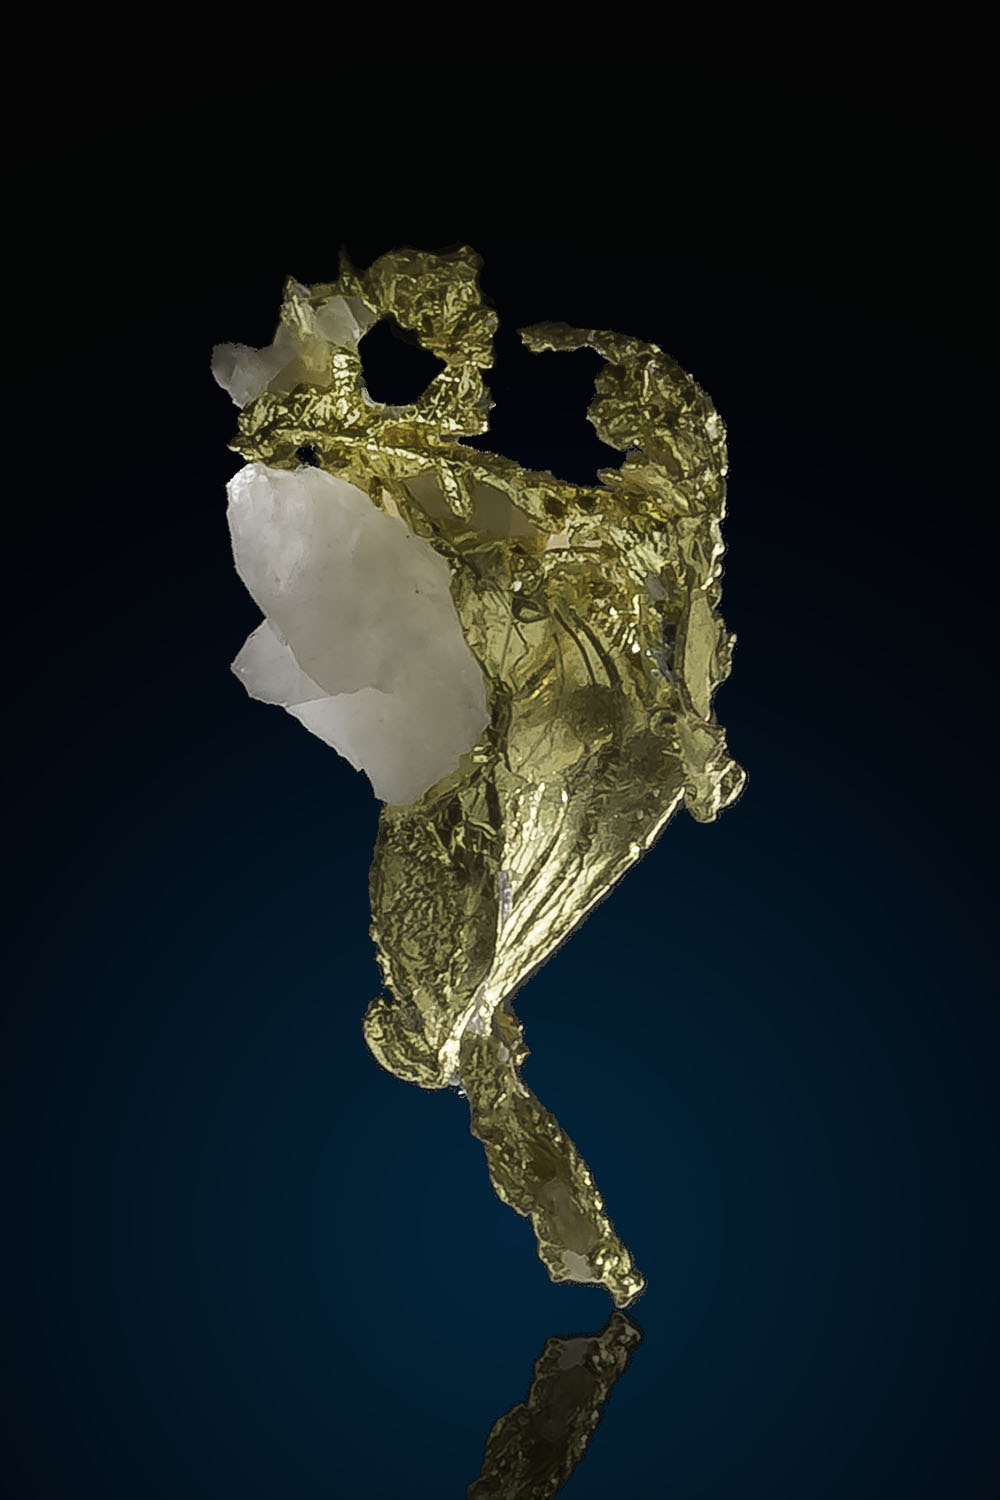 Twisted and Striated Gold Crystal - Eagles Nest Gold Mine